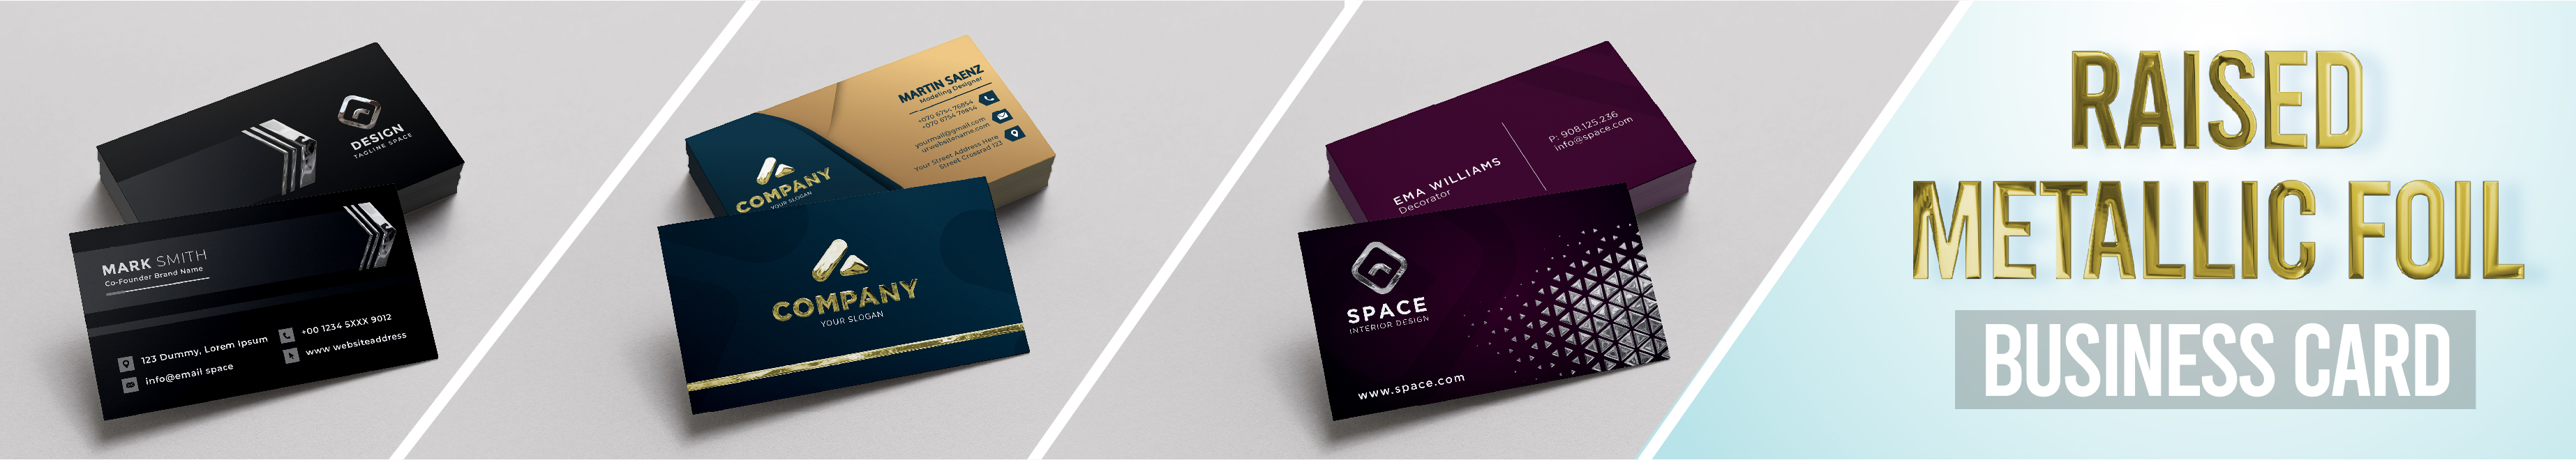 Raised Metallic Foil Business Cards